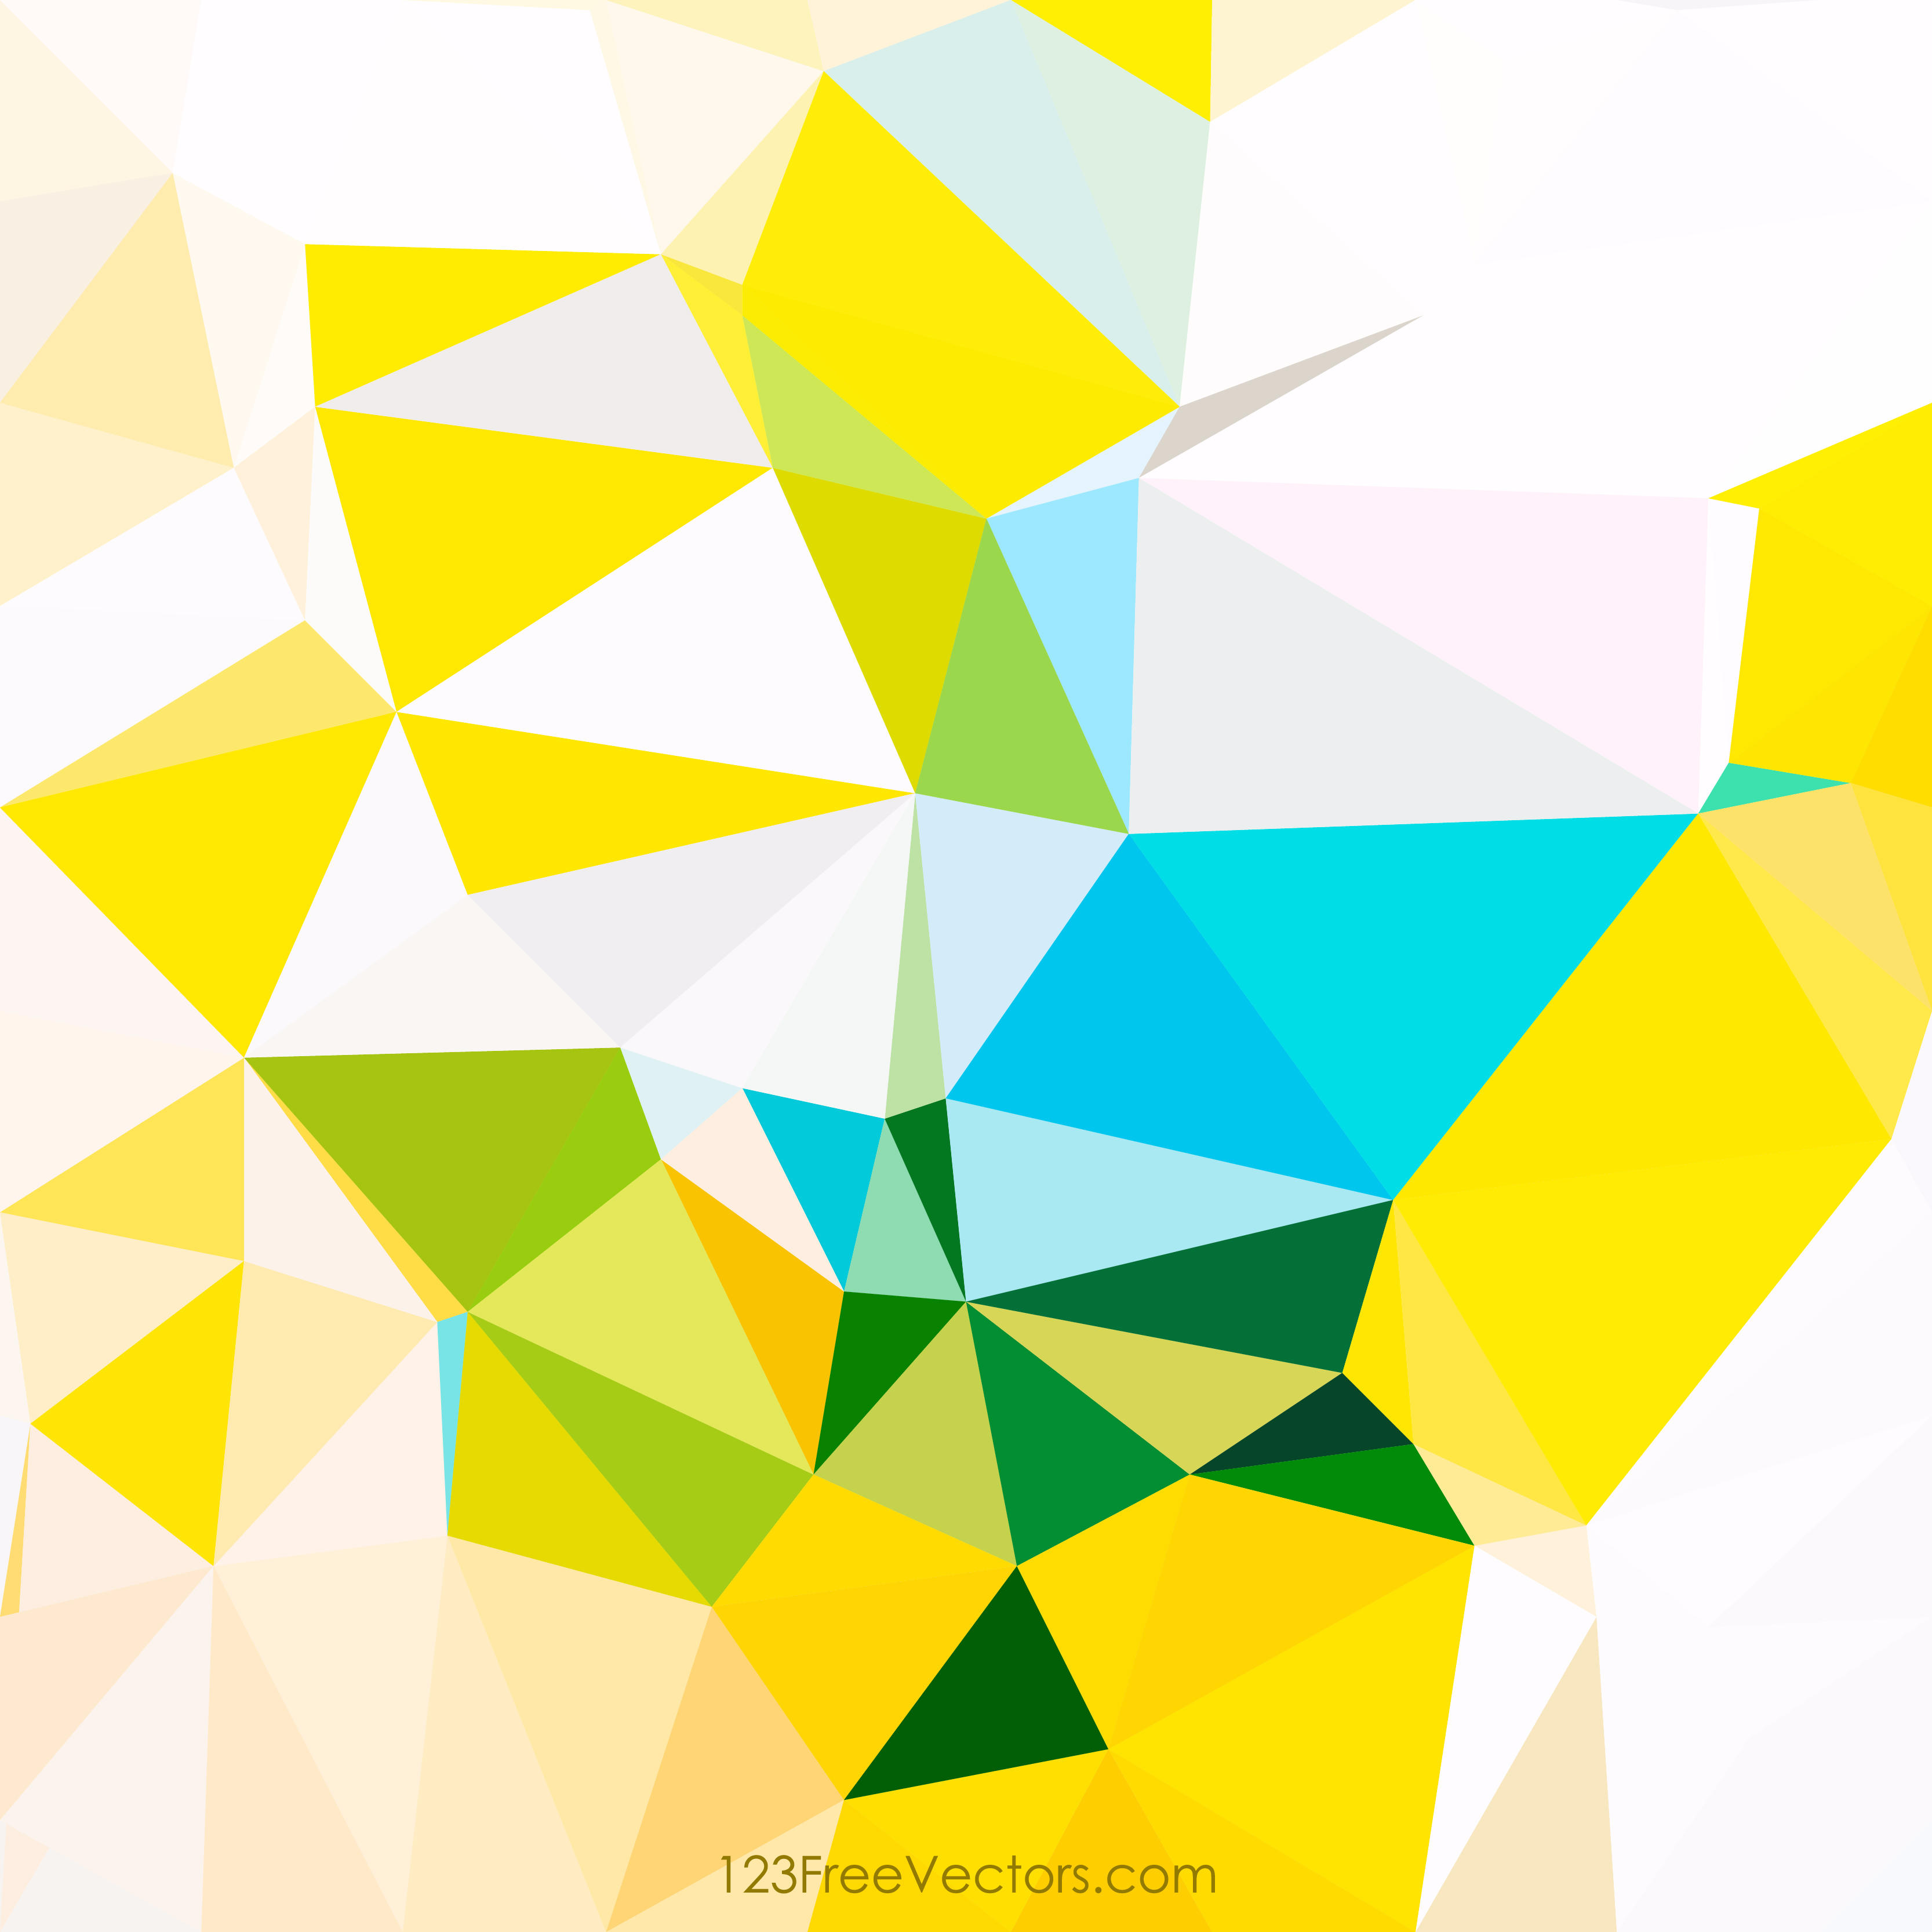 3333x3333 Low Poly Colorful Background Vector Graphics 123freevectors